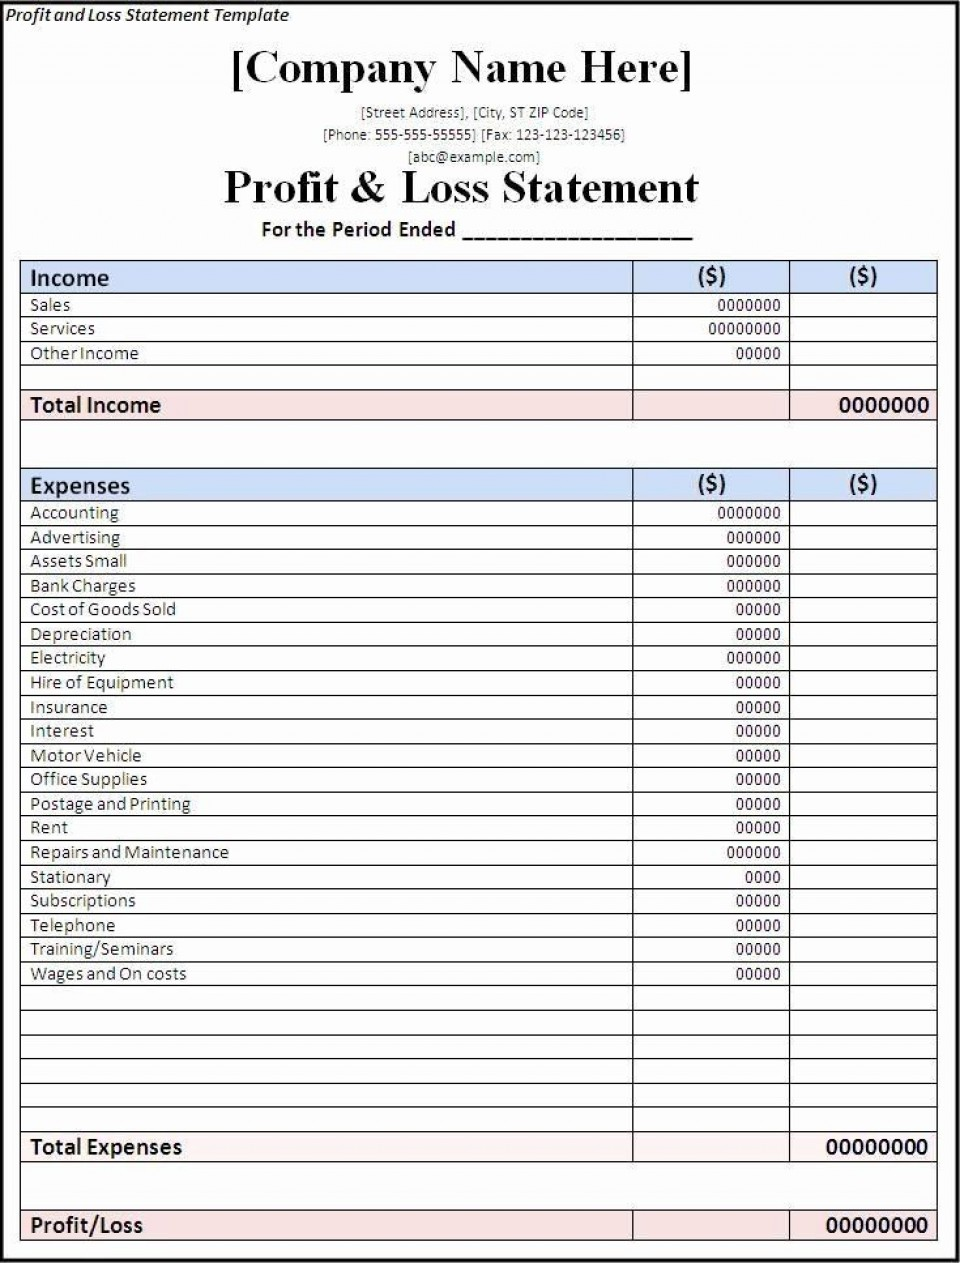 002 Wondrou Basic Profit And Los Template Image  Free Simple Form Statement Excel For Self Employed960